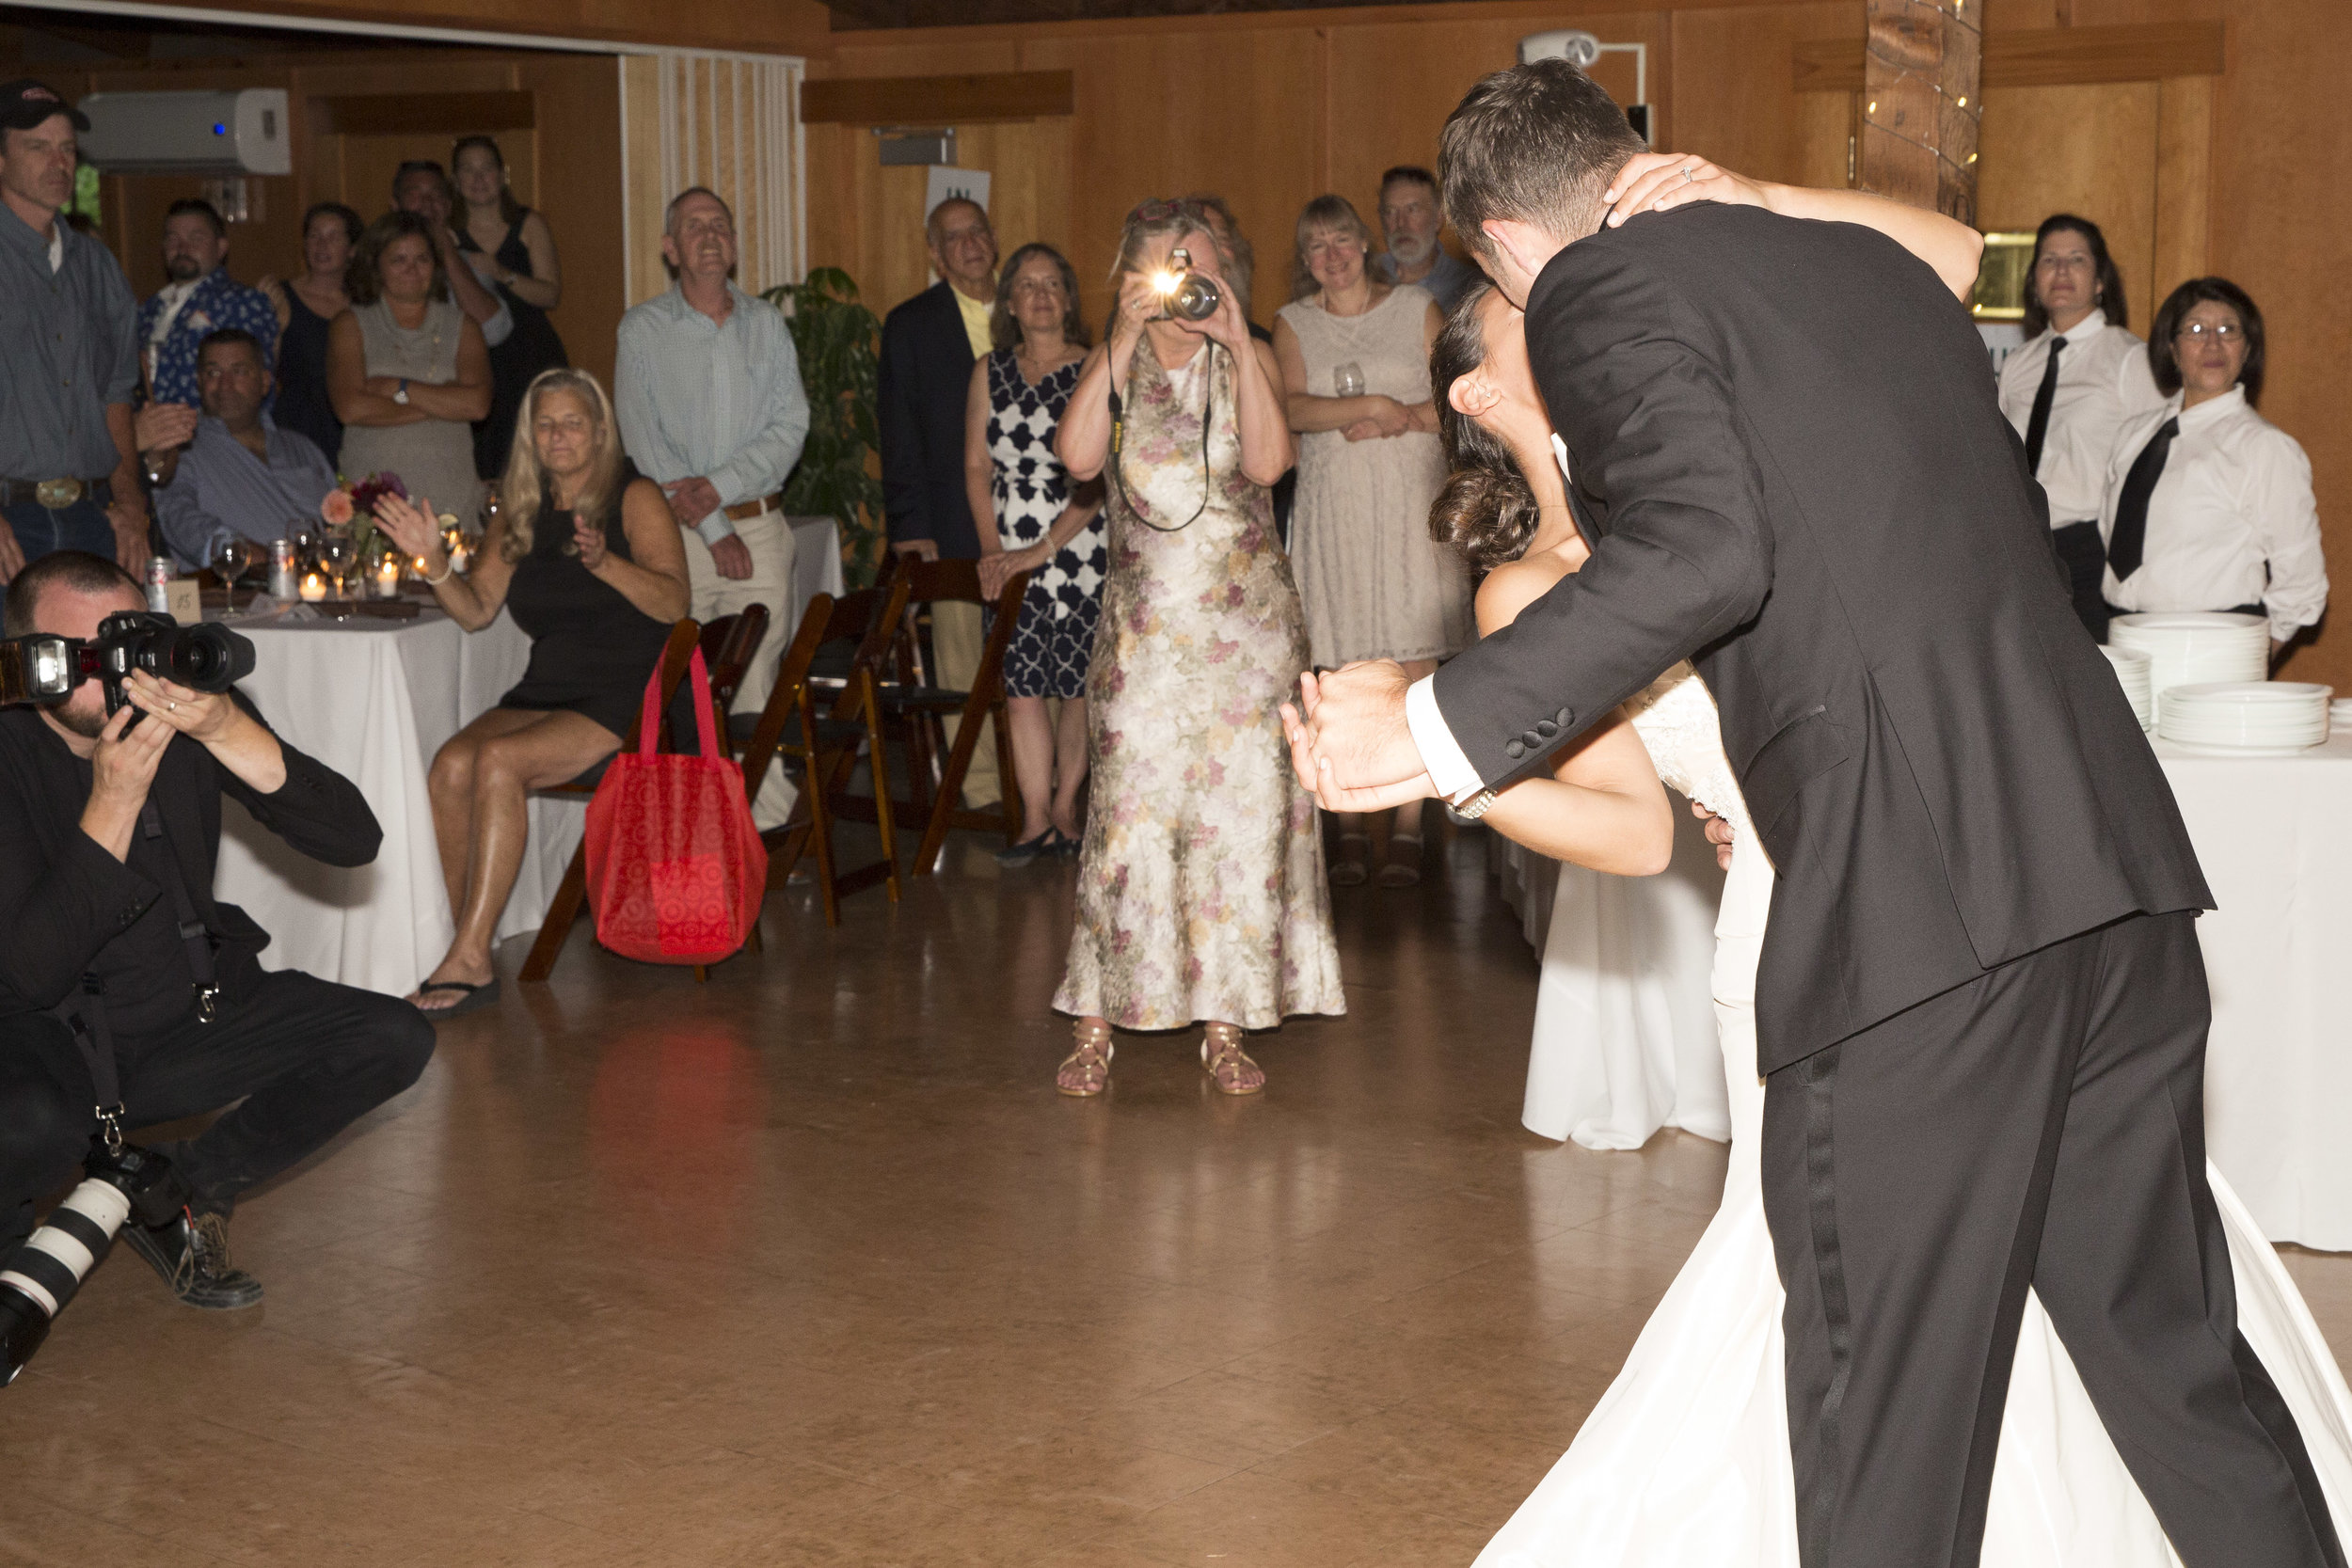 Wedding Photographer Ben Hider shooting the bride and grooms first dance in Westchester, New York